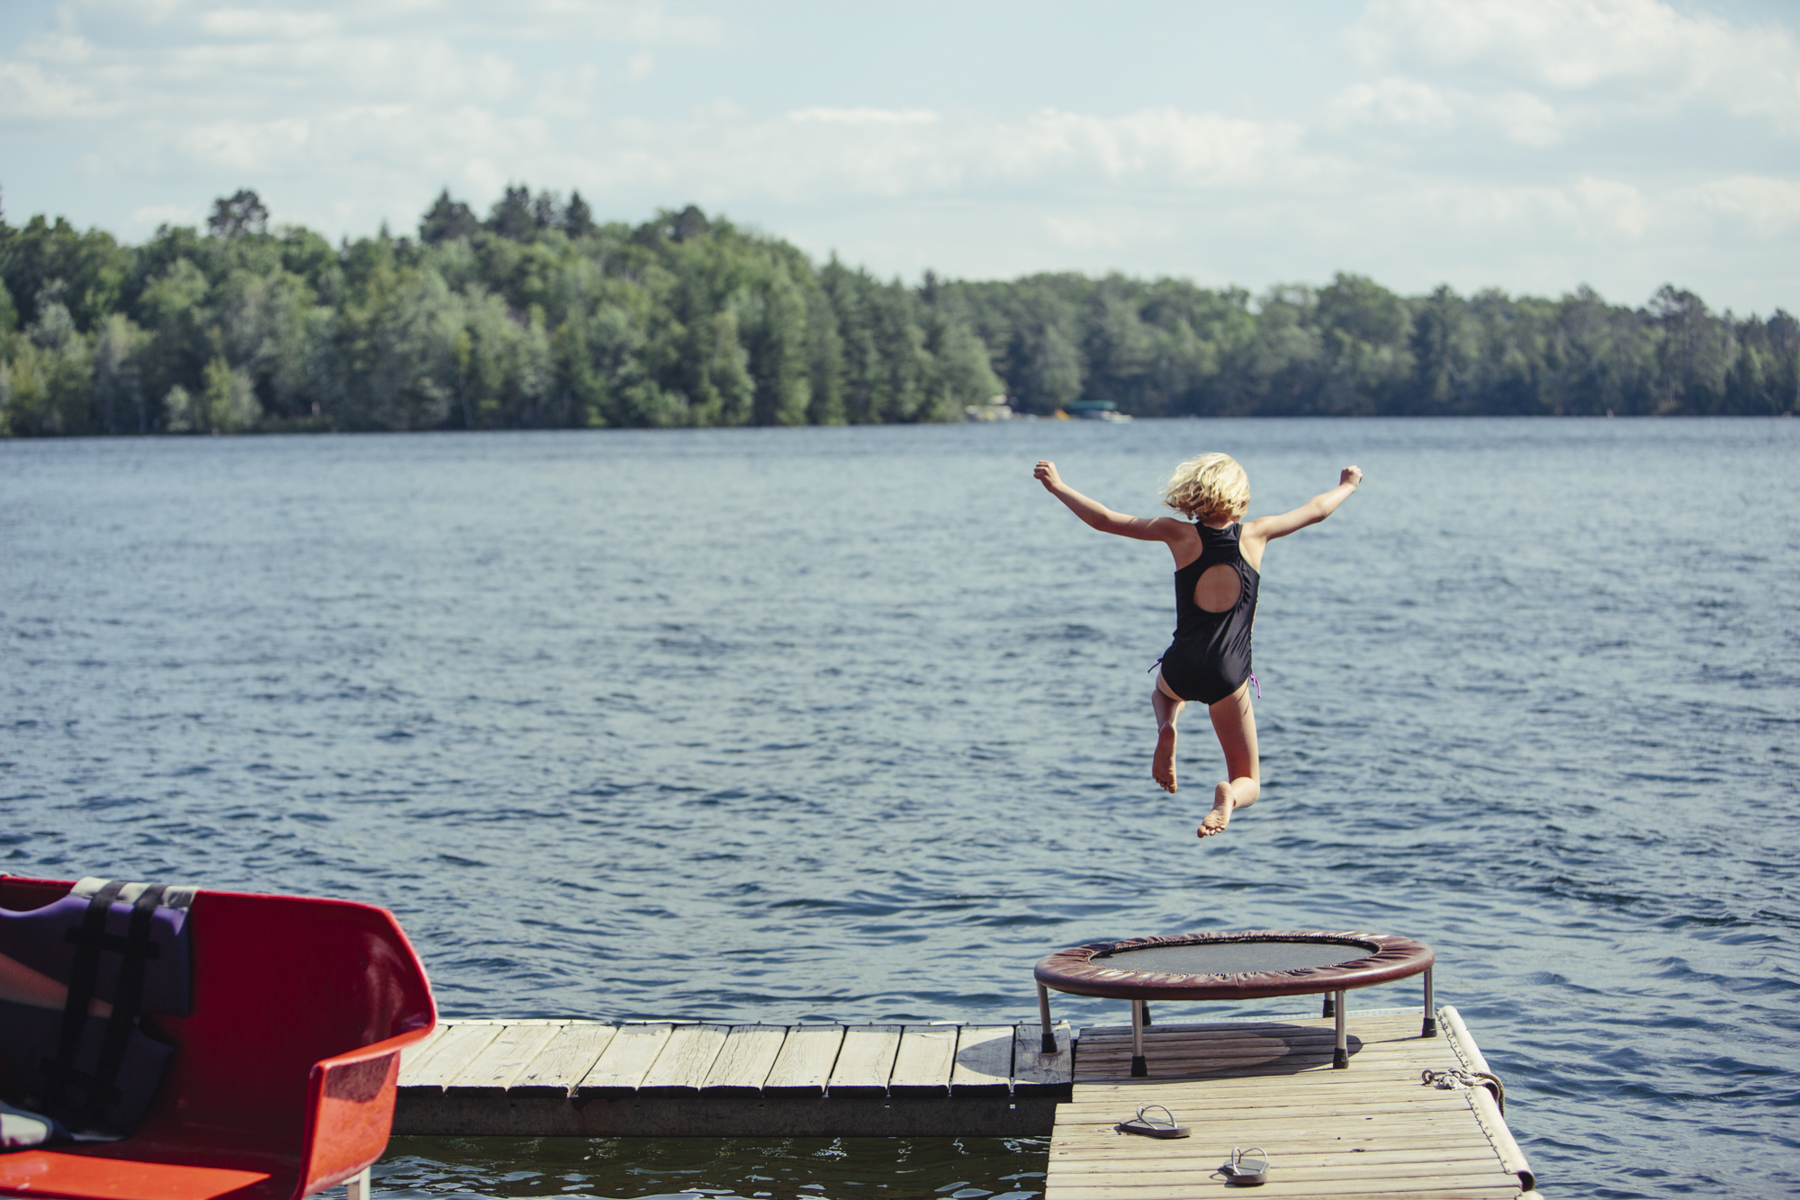 Young Girl Jumping into Lake